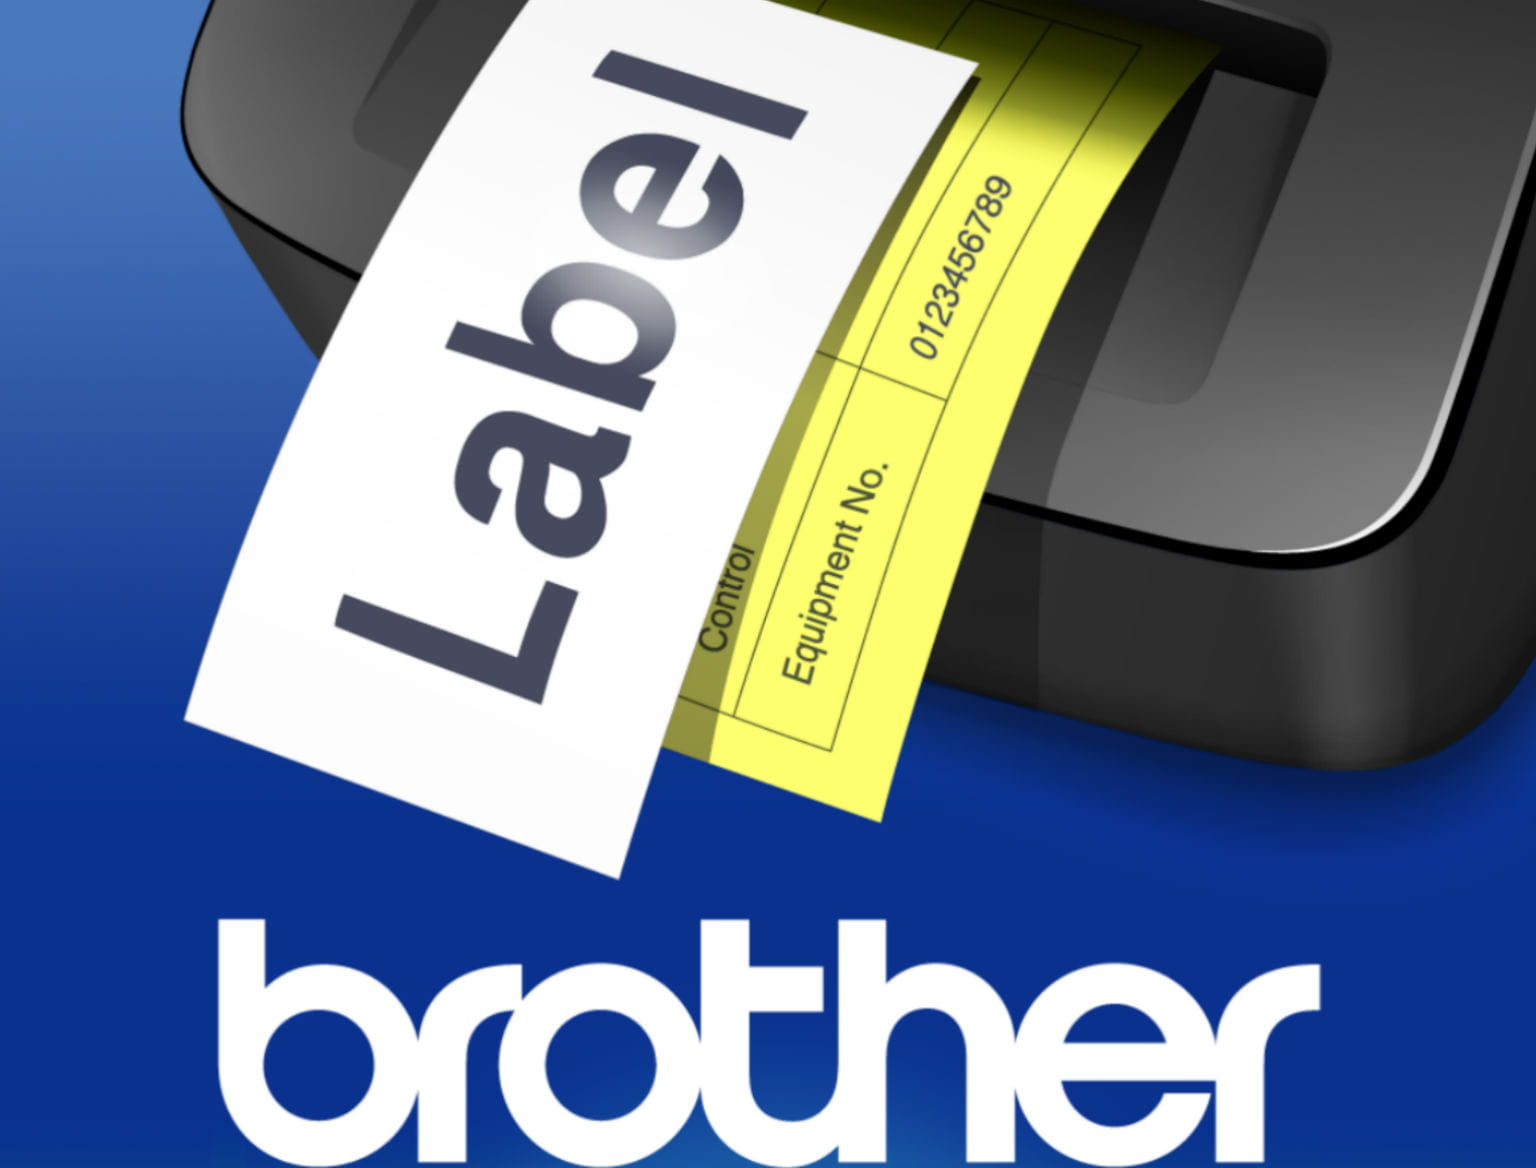 iPrint and Label